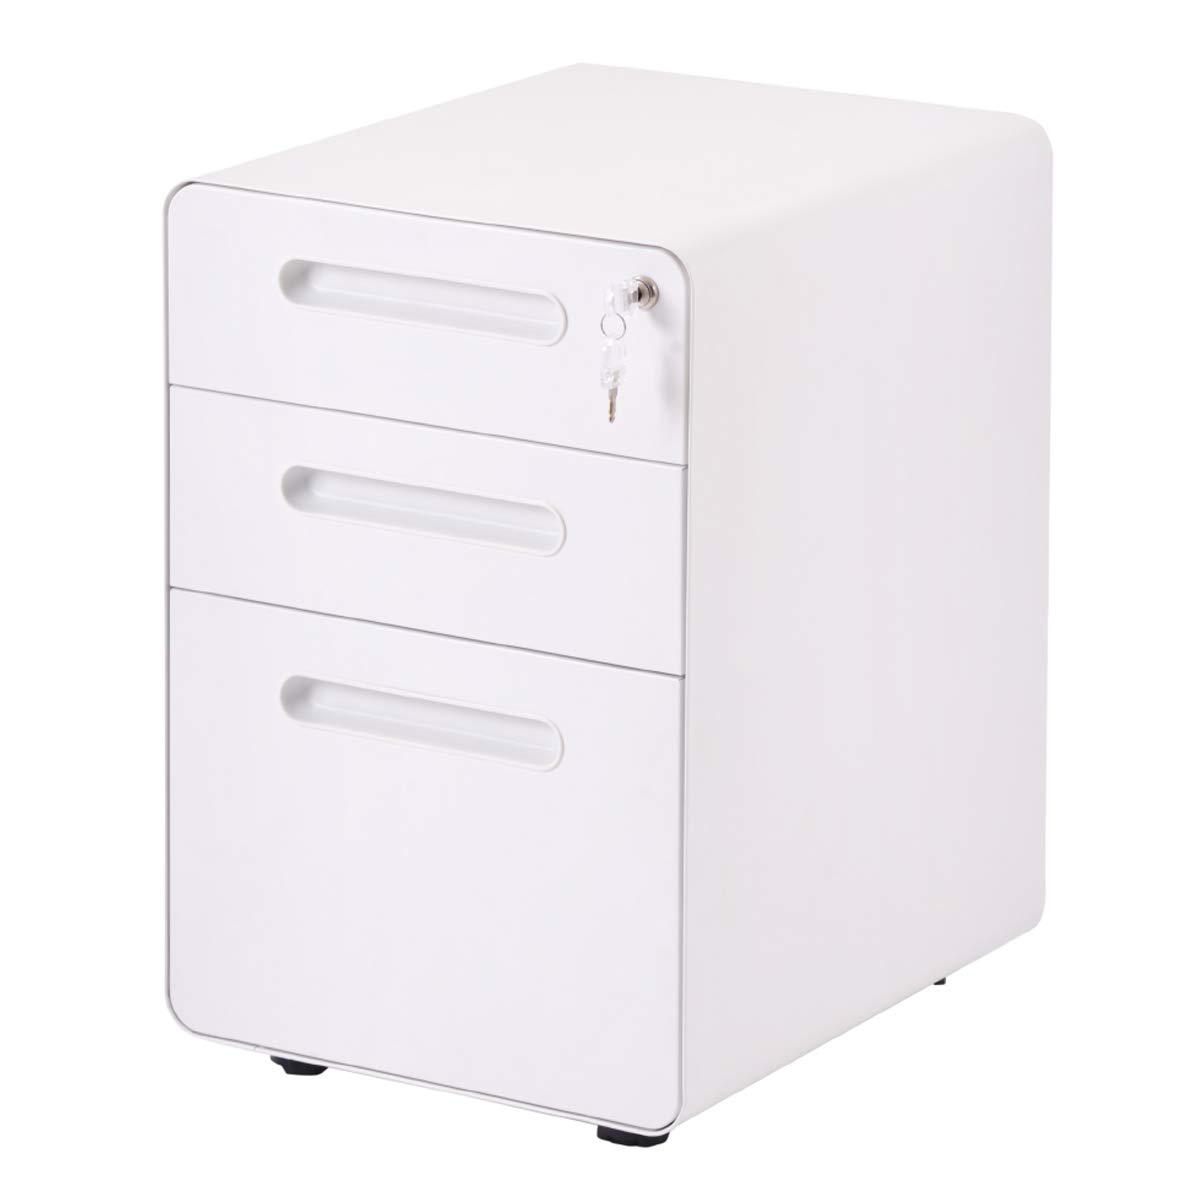 Merax File Cabinet Mobile 3 Drawer Metal Pedestal Filing Cabinets with Lock Key 5 Rolling Casters Fully Assembled for Home Office Hanging Folders A4 Letter Legal Size by Merax